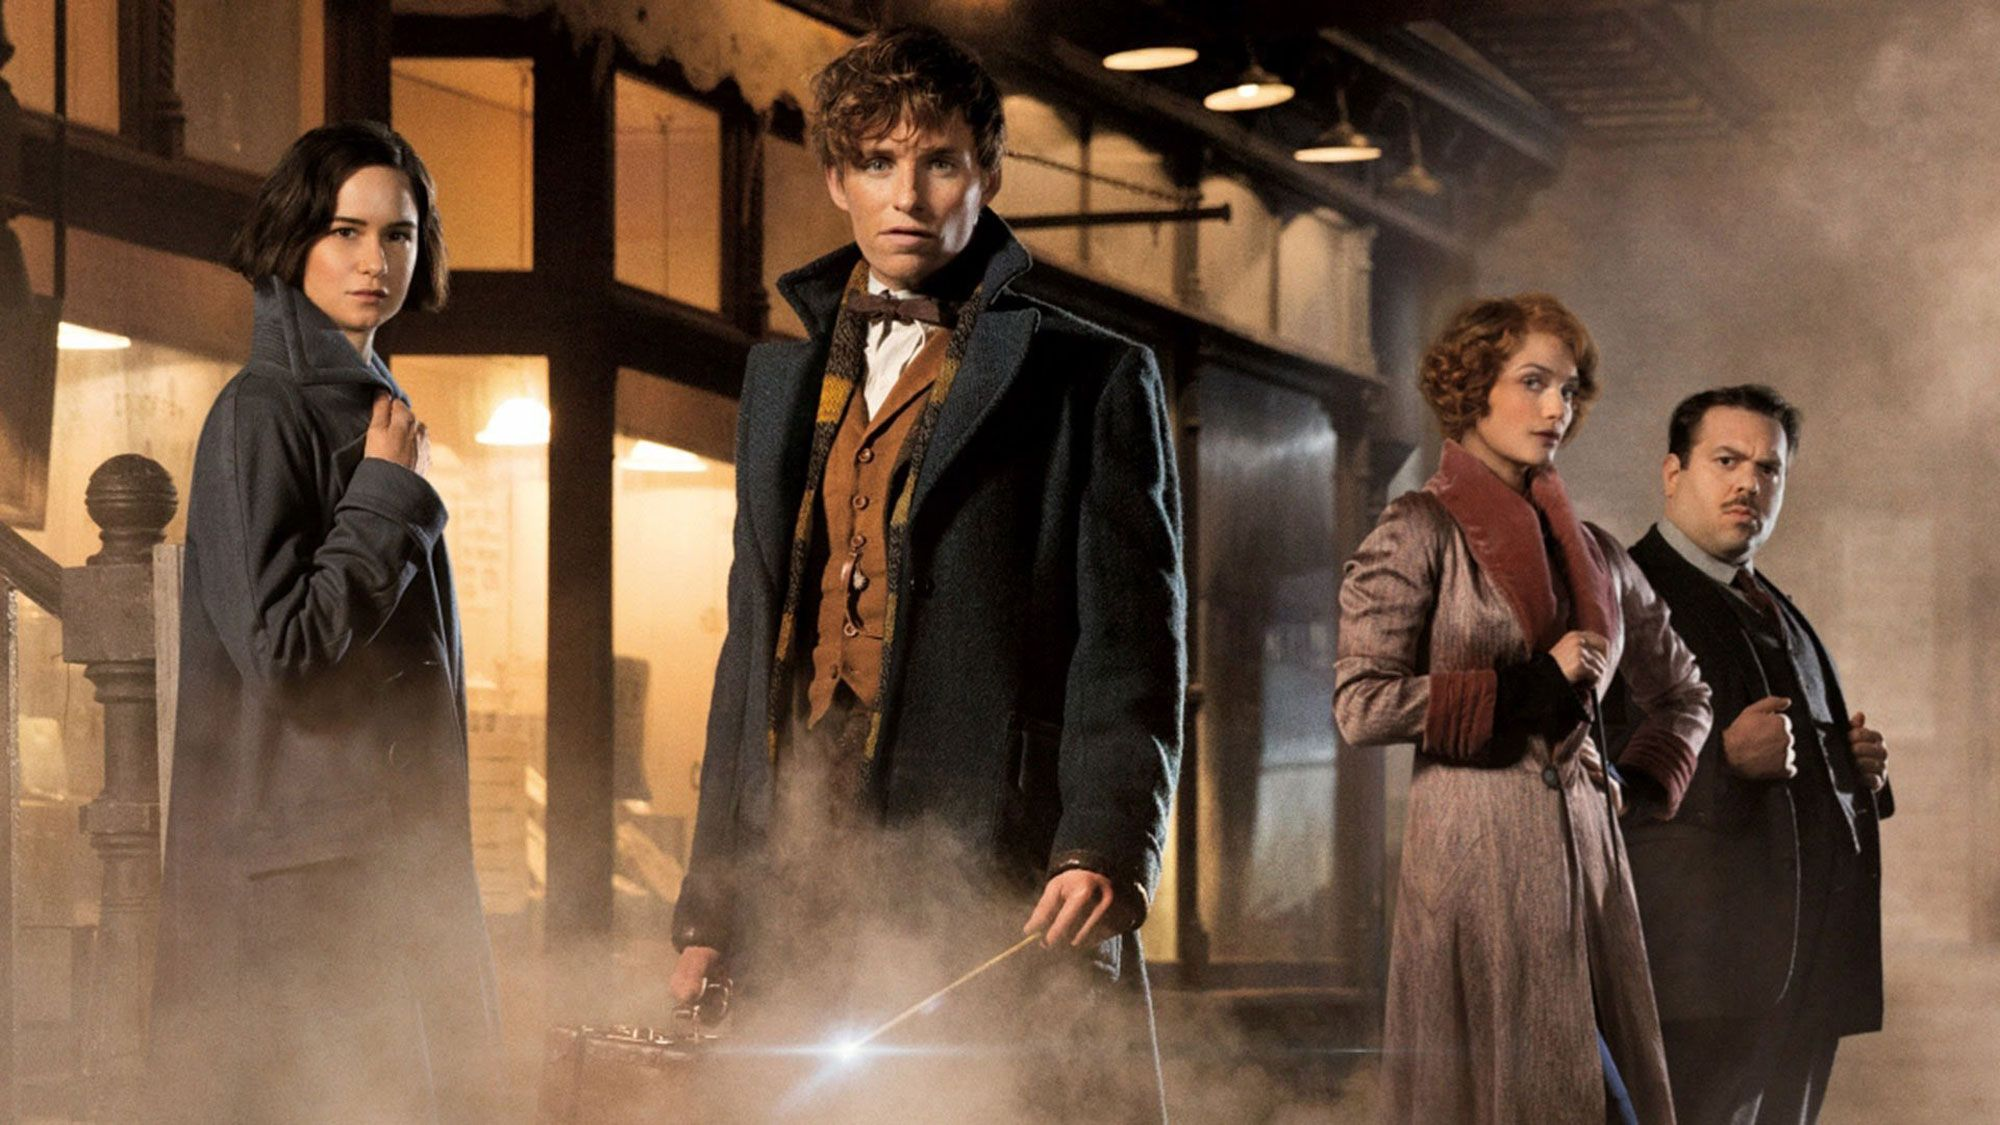 Fantastic Beasts 2 filming starts as plot details released and cast officially confirmed